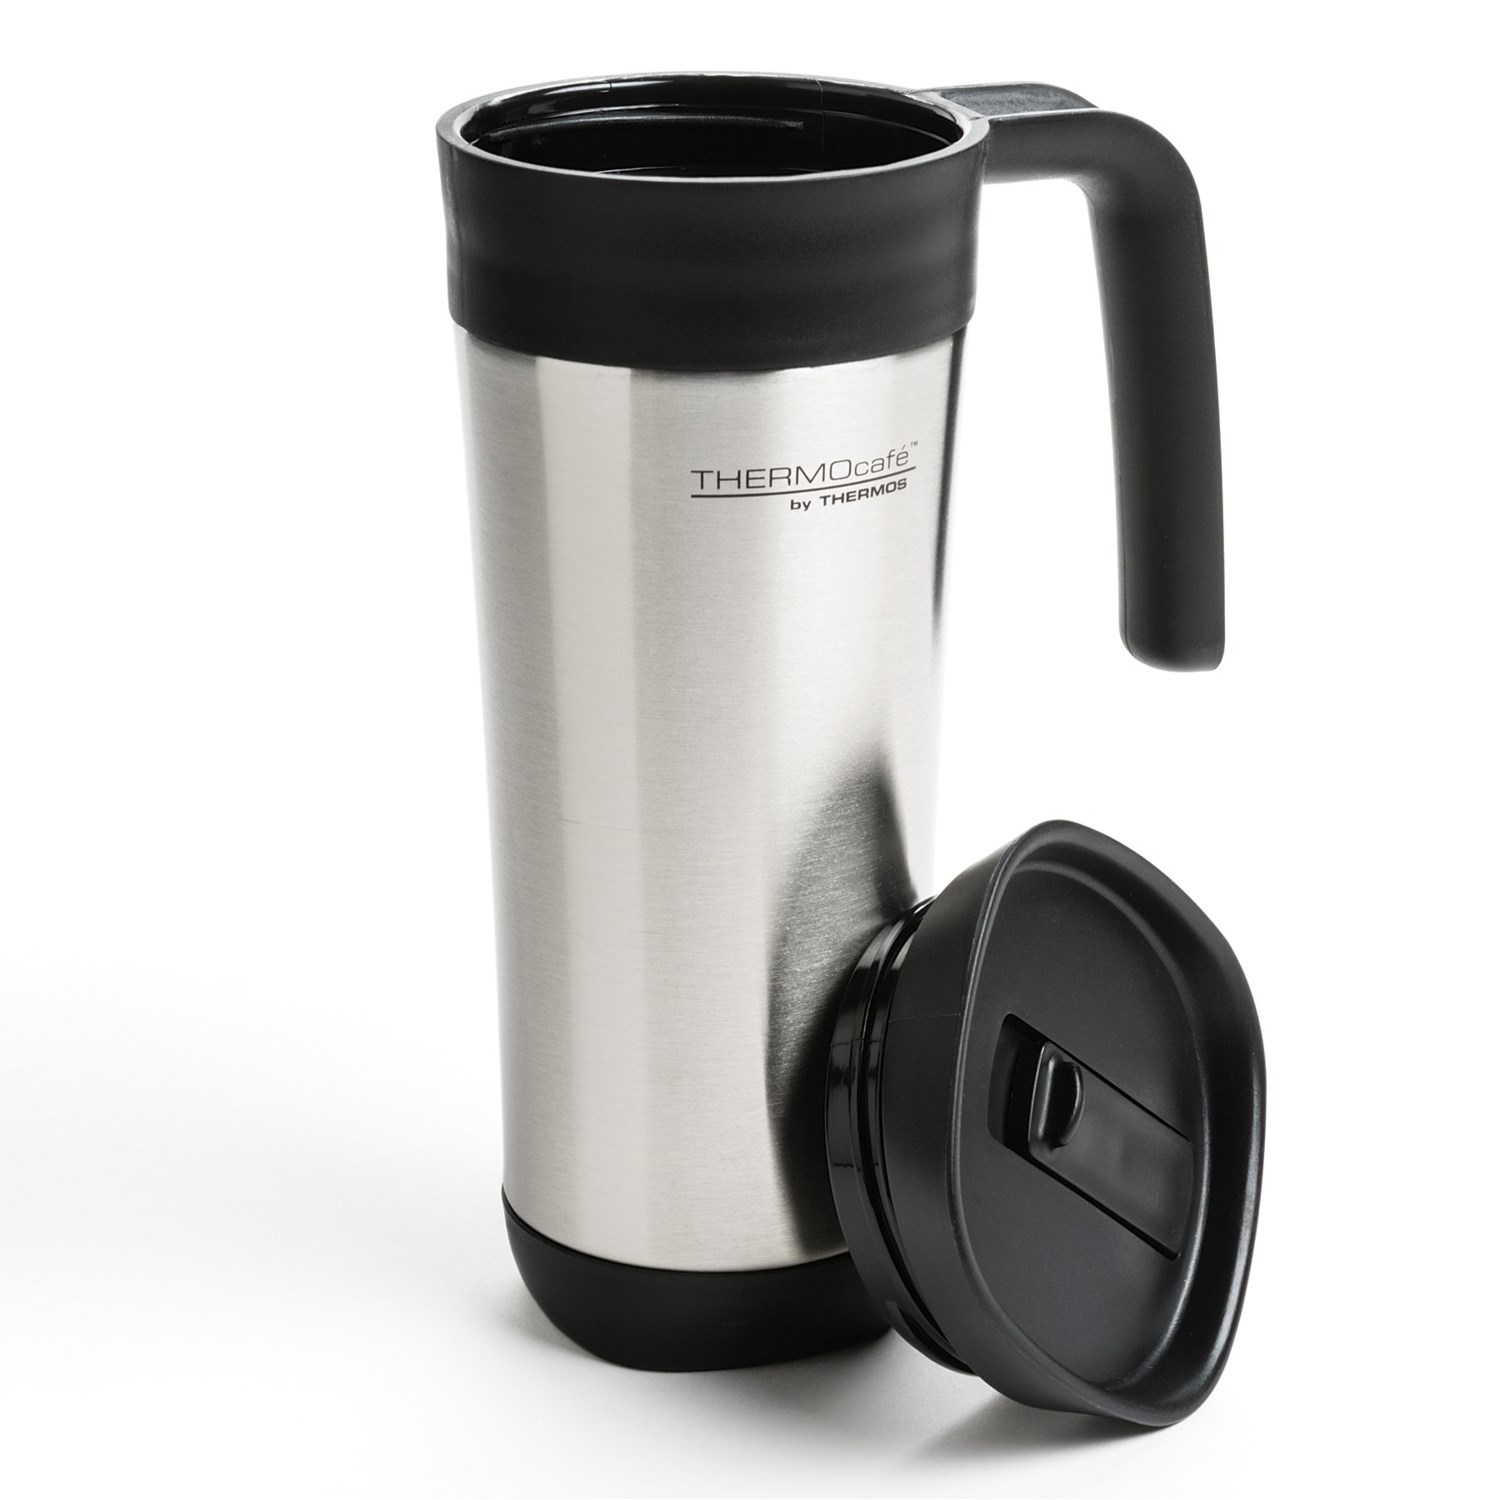 Oz Insulated Stainless Steel Travel Mug Thermocafe By Thermos